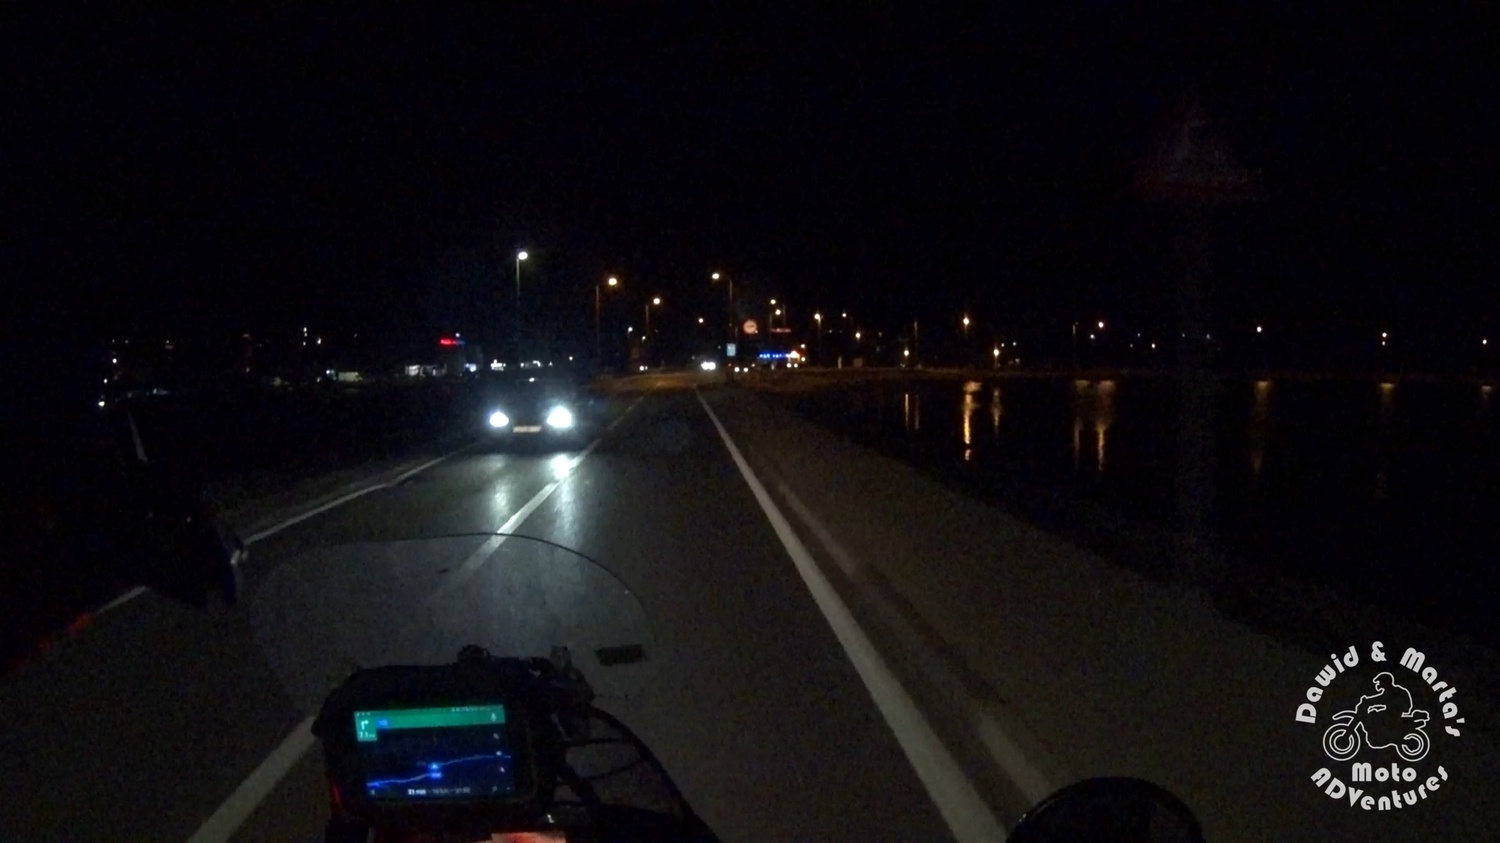 Riding the Pag Island by night